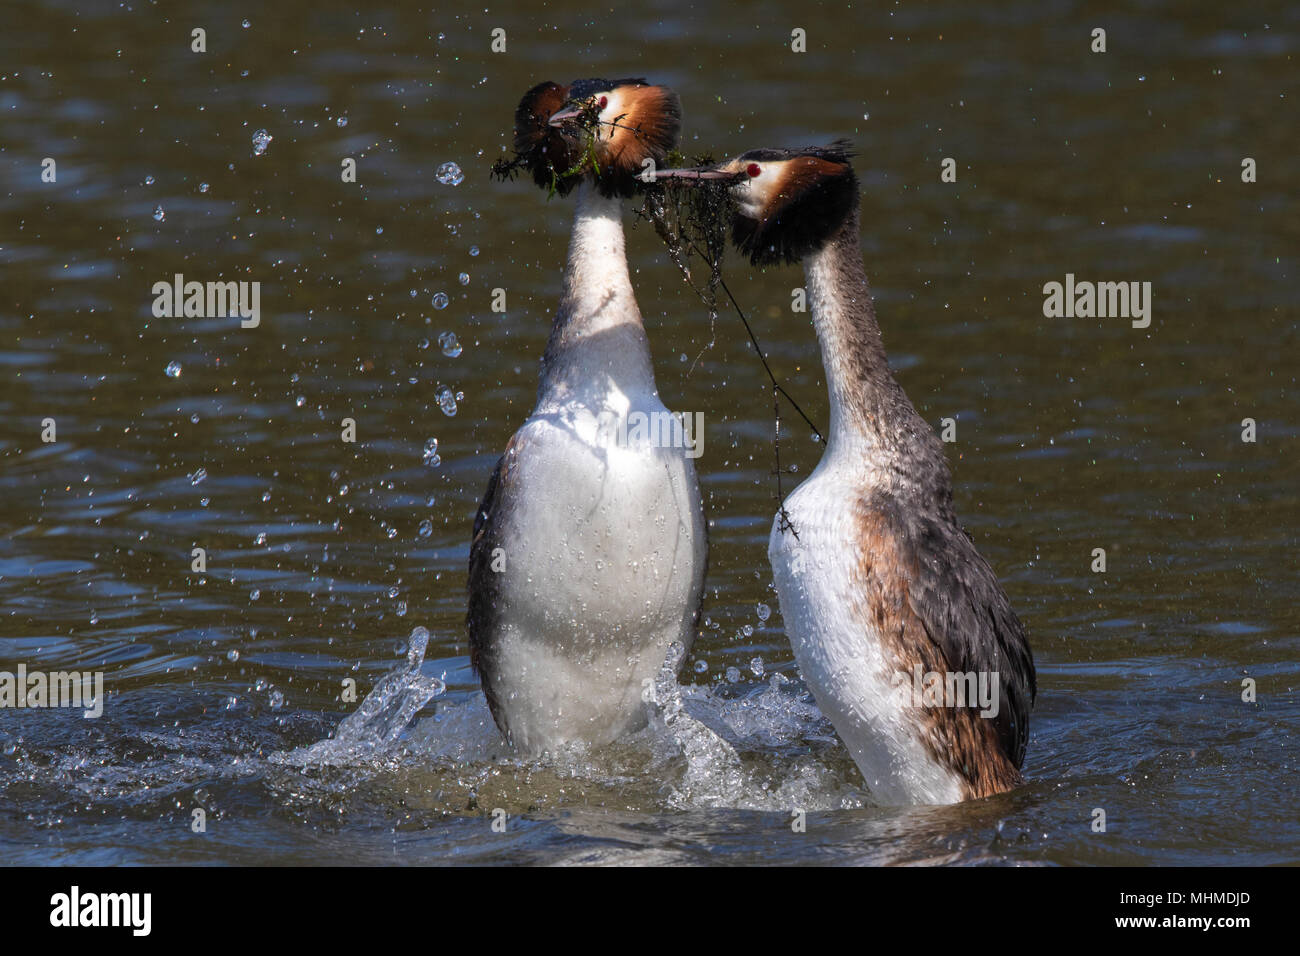 pair of Great Crested Grebes (Podiceps cristatus) dancing on the surface of a lake during their courtship display with aquatic plants in their bills - Stock Image